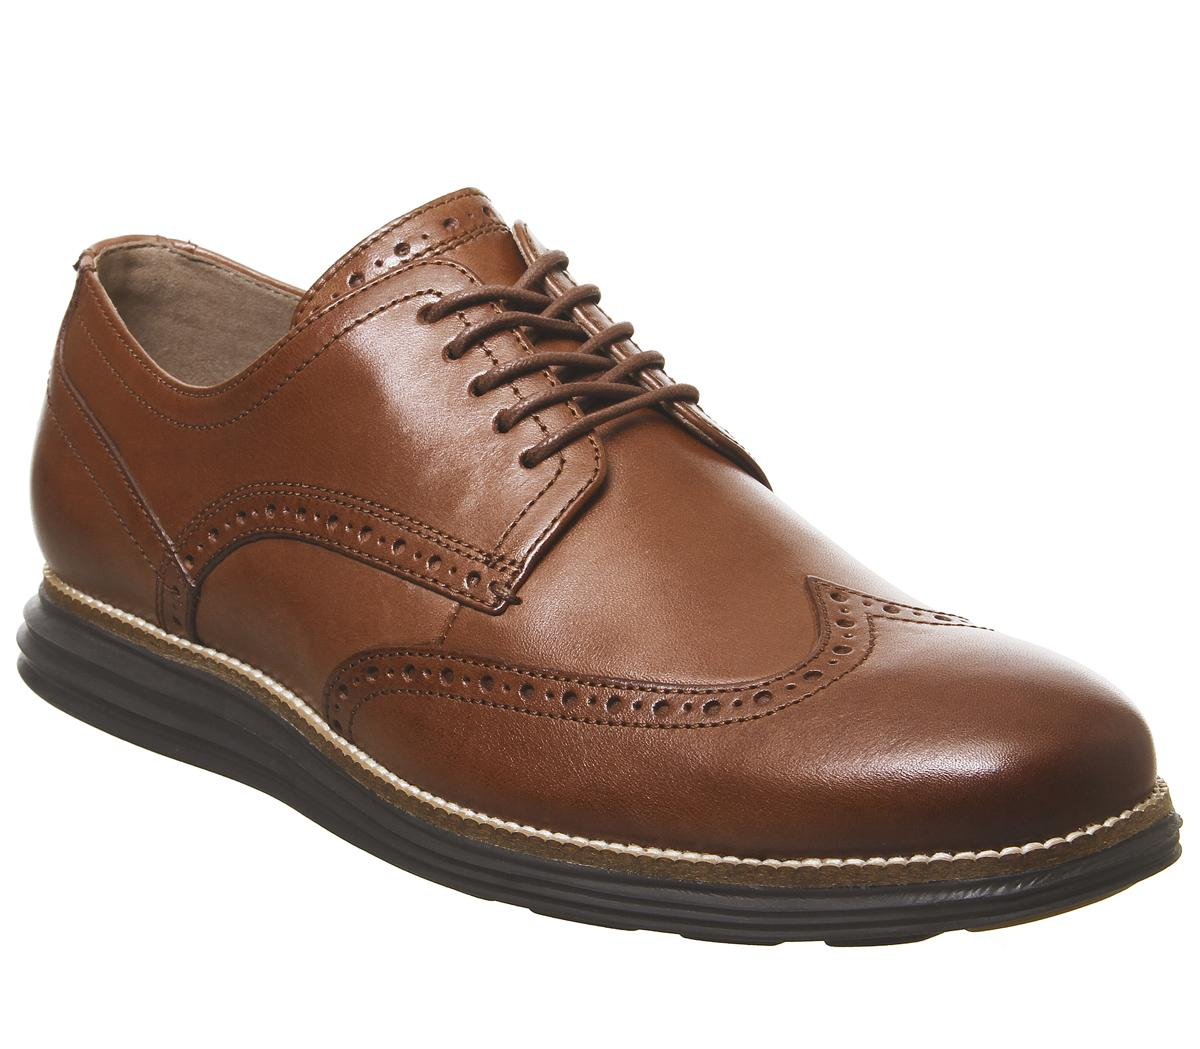 W Original Grand Wingtip Oxford Shoes